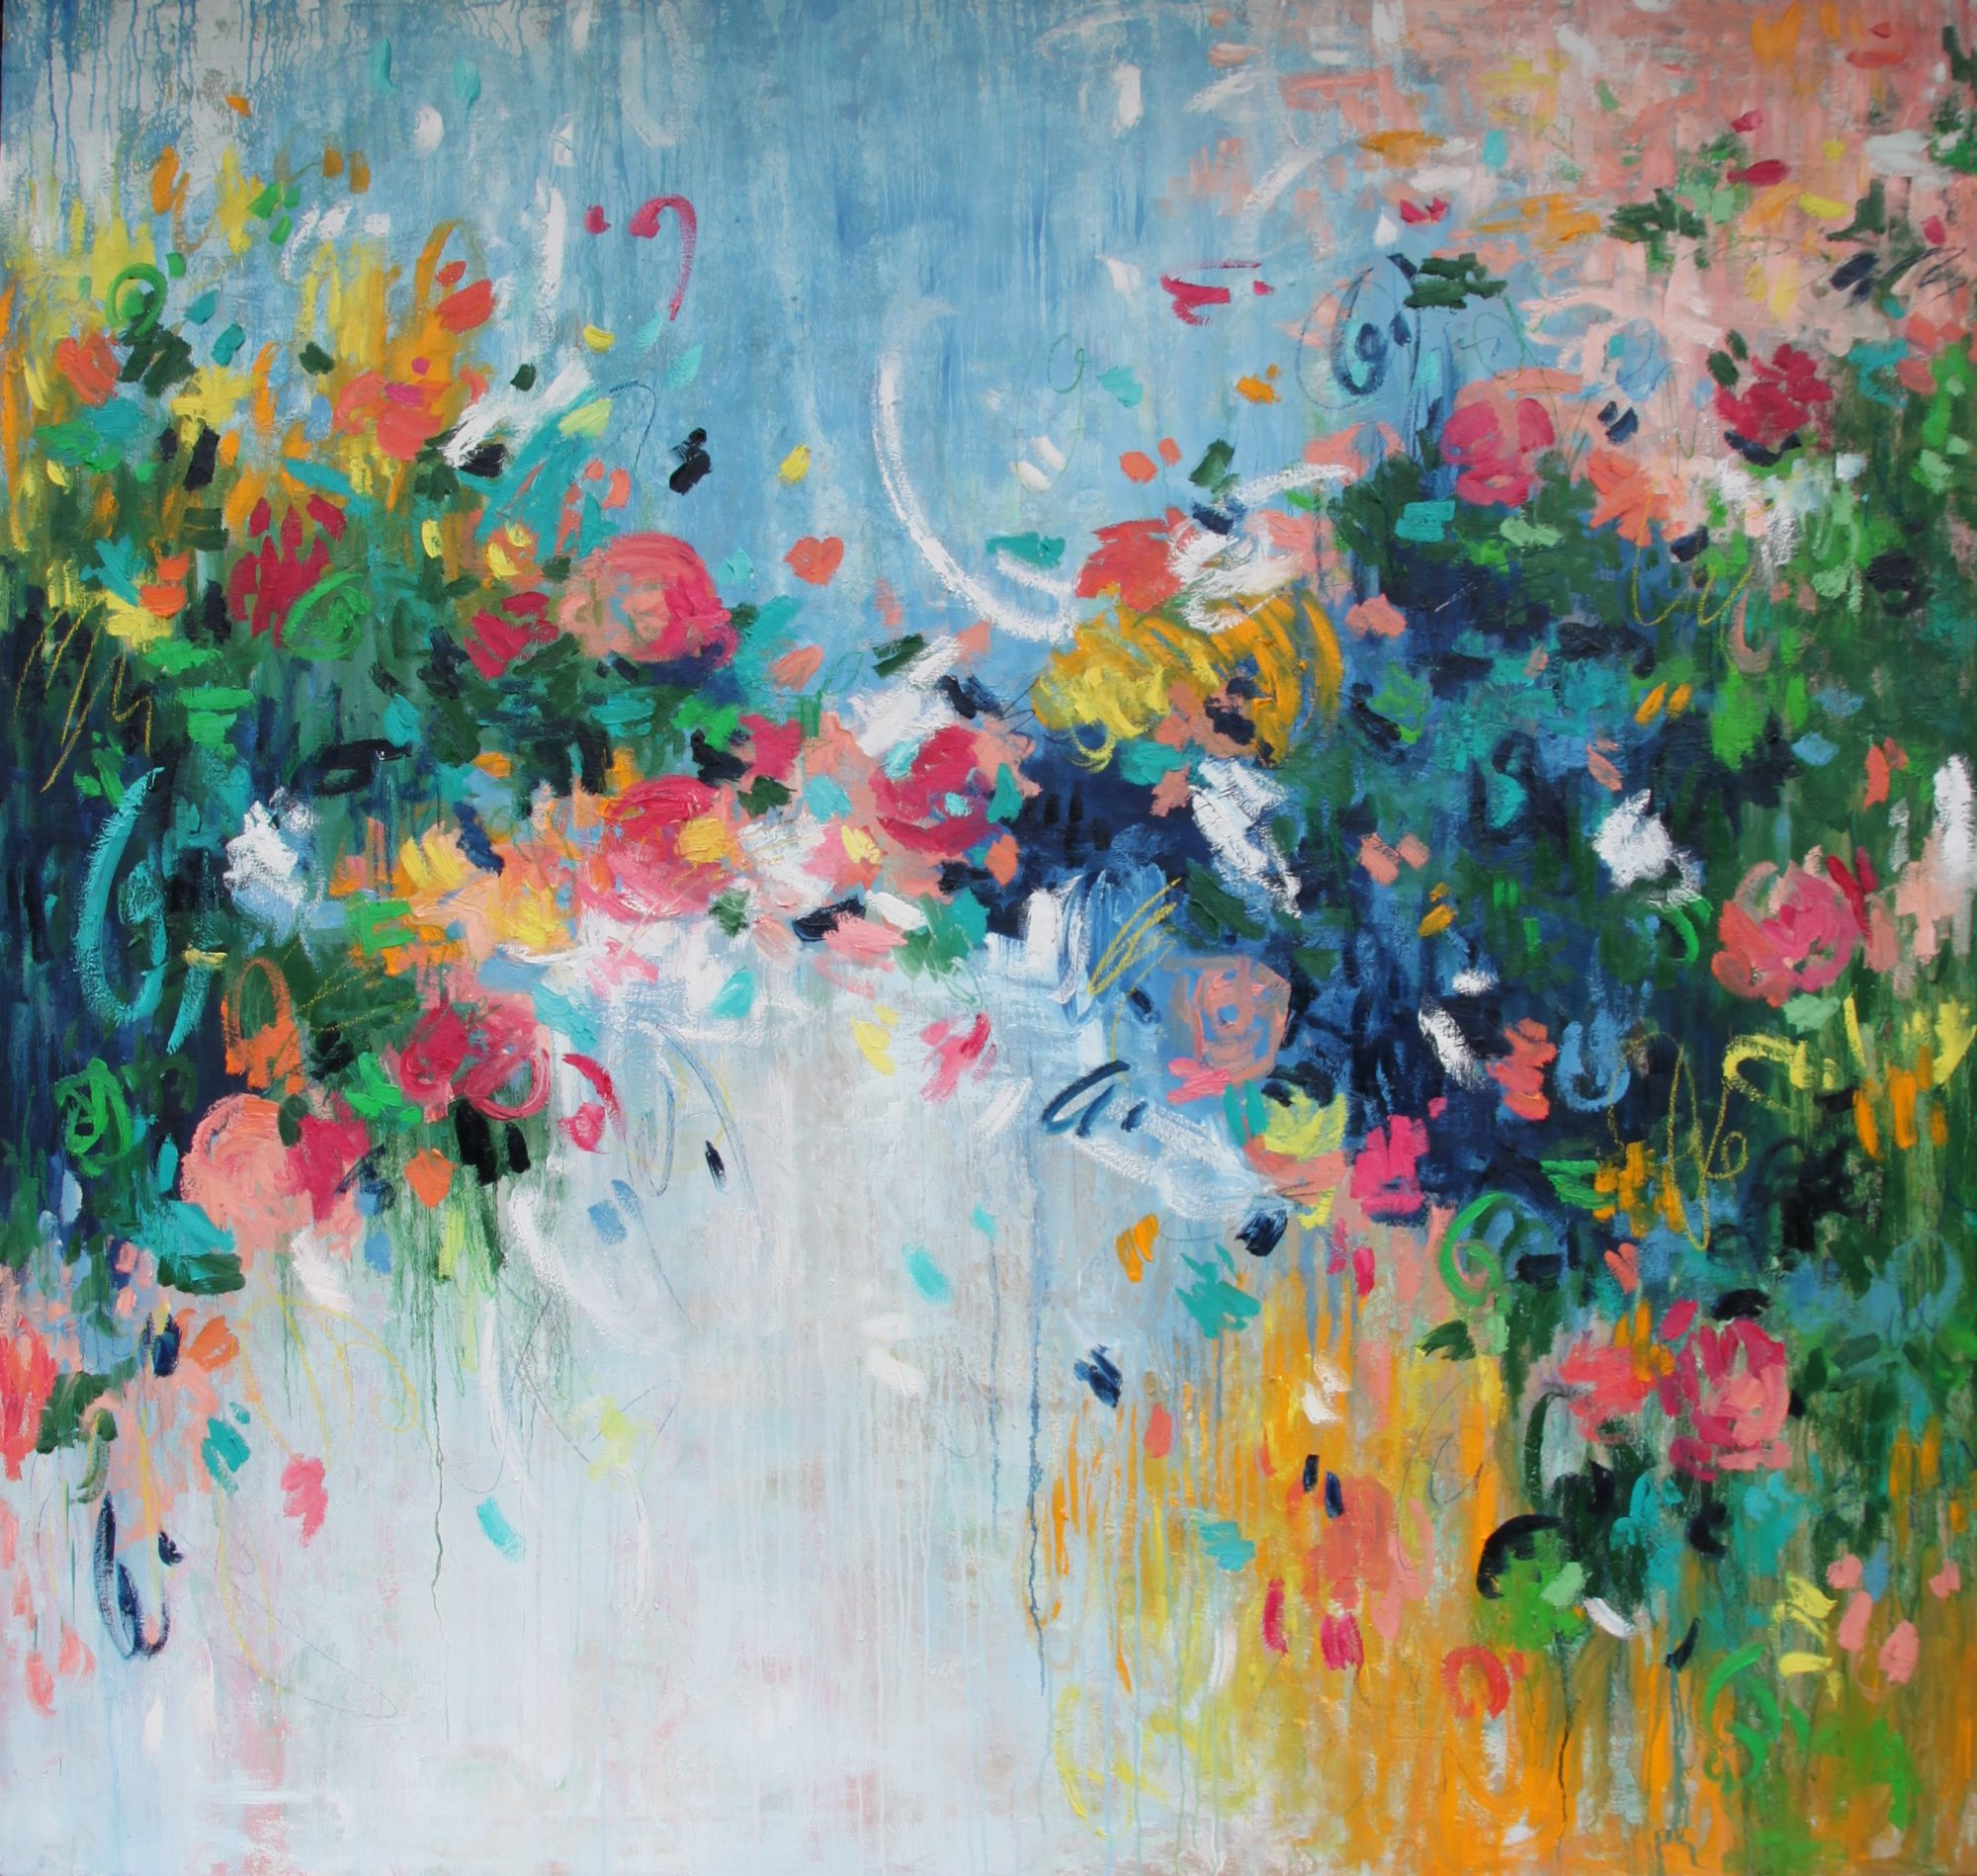 Belinda-nadwie-art-abstract-painting-love blossoms